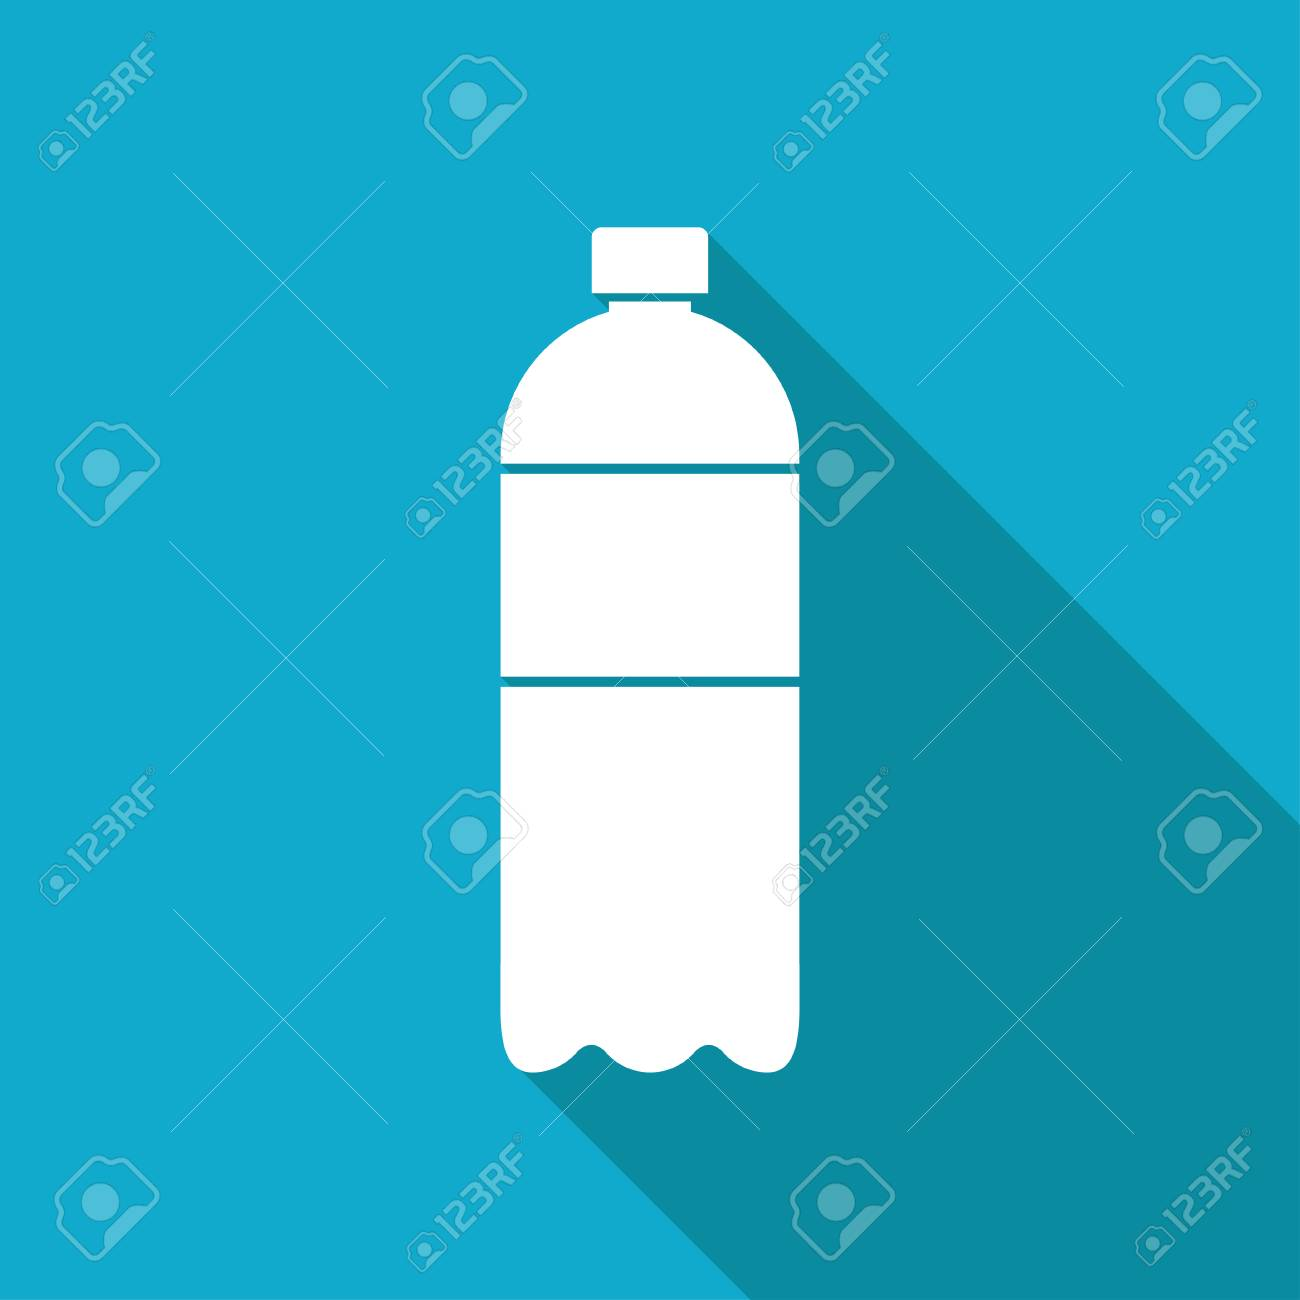 Flat Water Bottle >> Vector White Flat Water Bottle On Blue Background Royalty Free